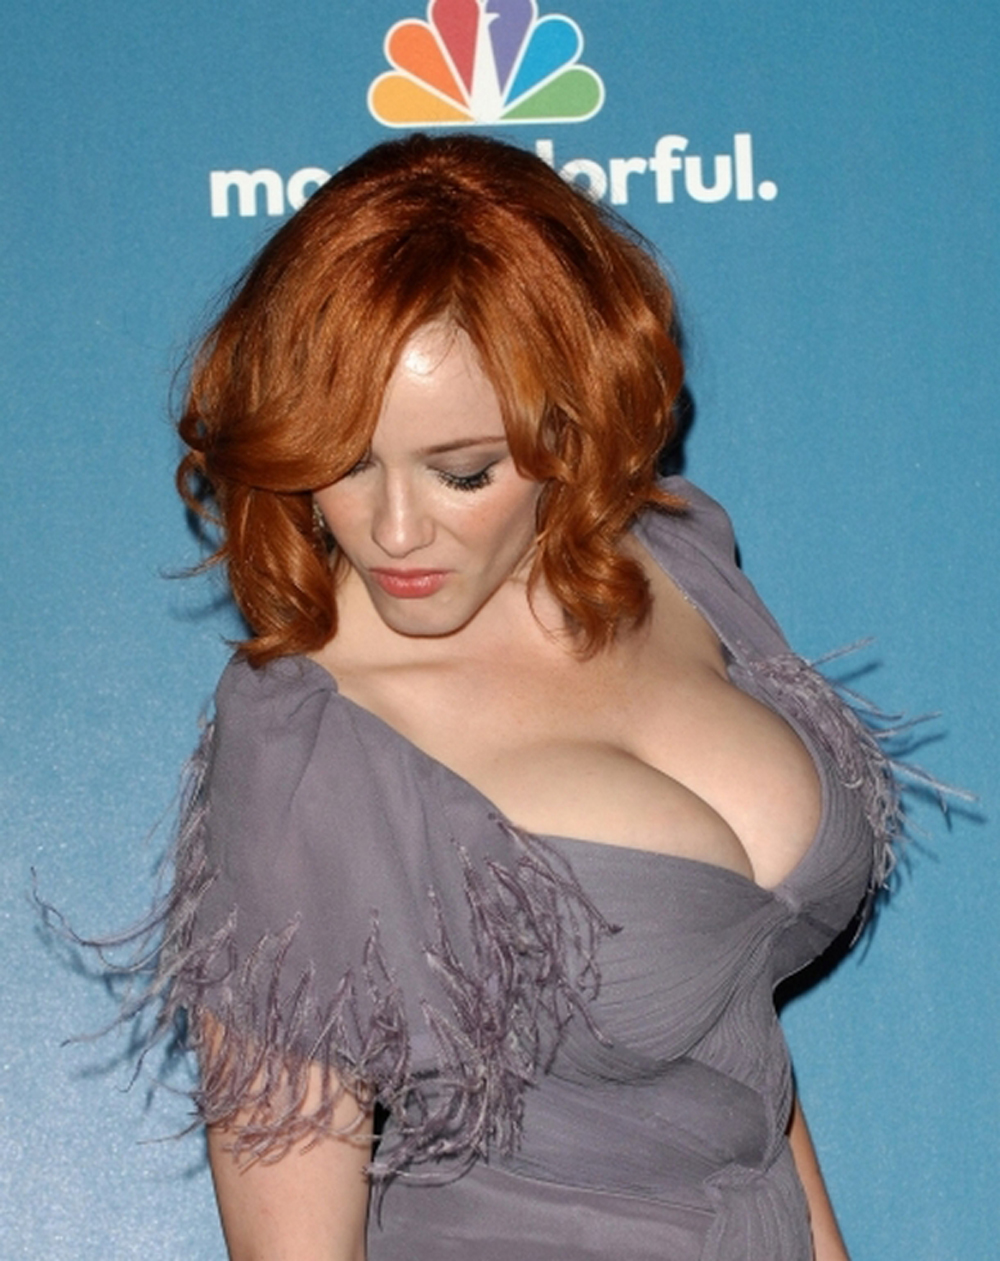 christina-hendricks01